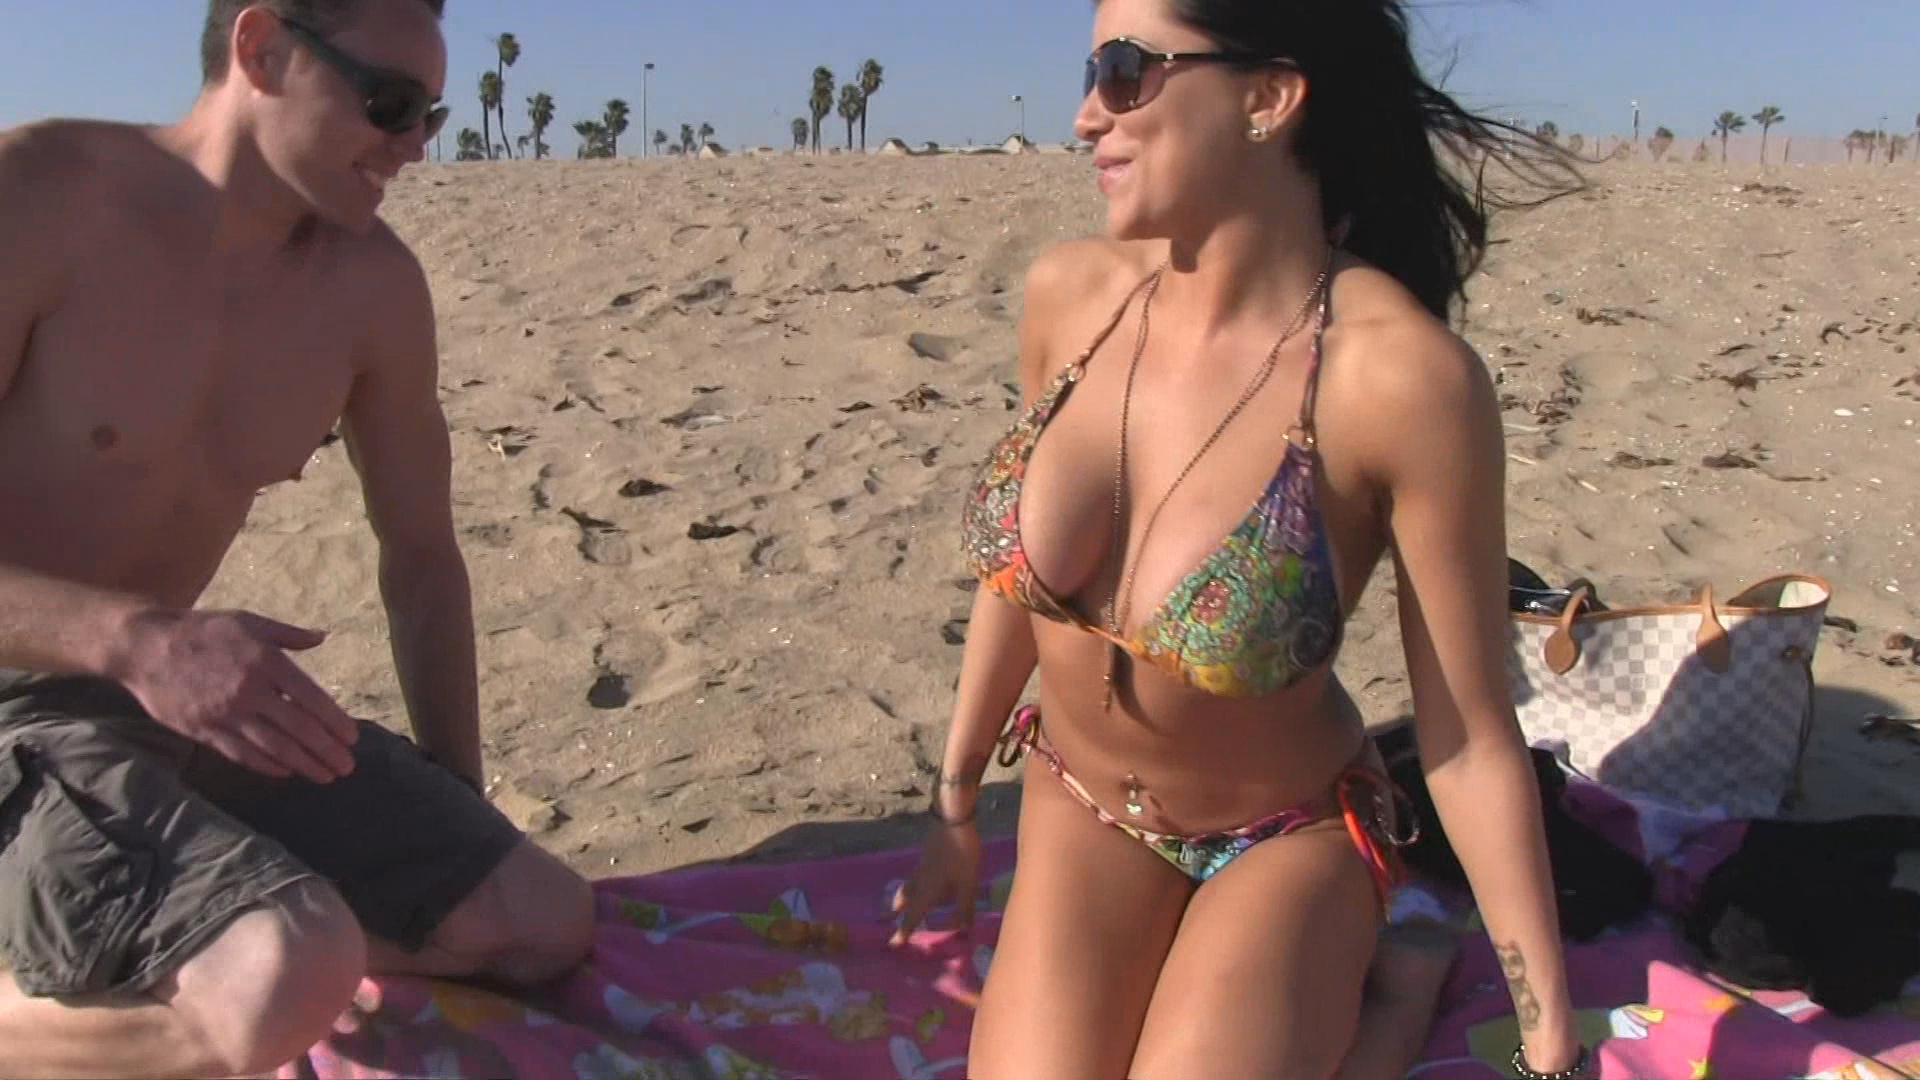 Big Tits On The Beach 2 xvideos167312